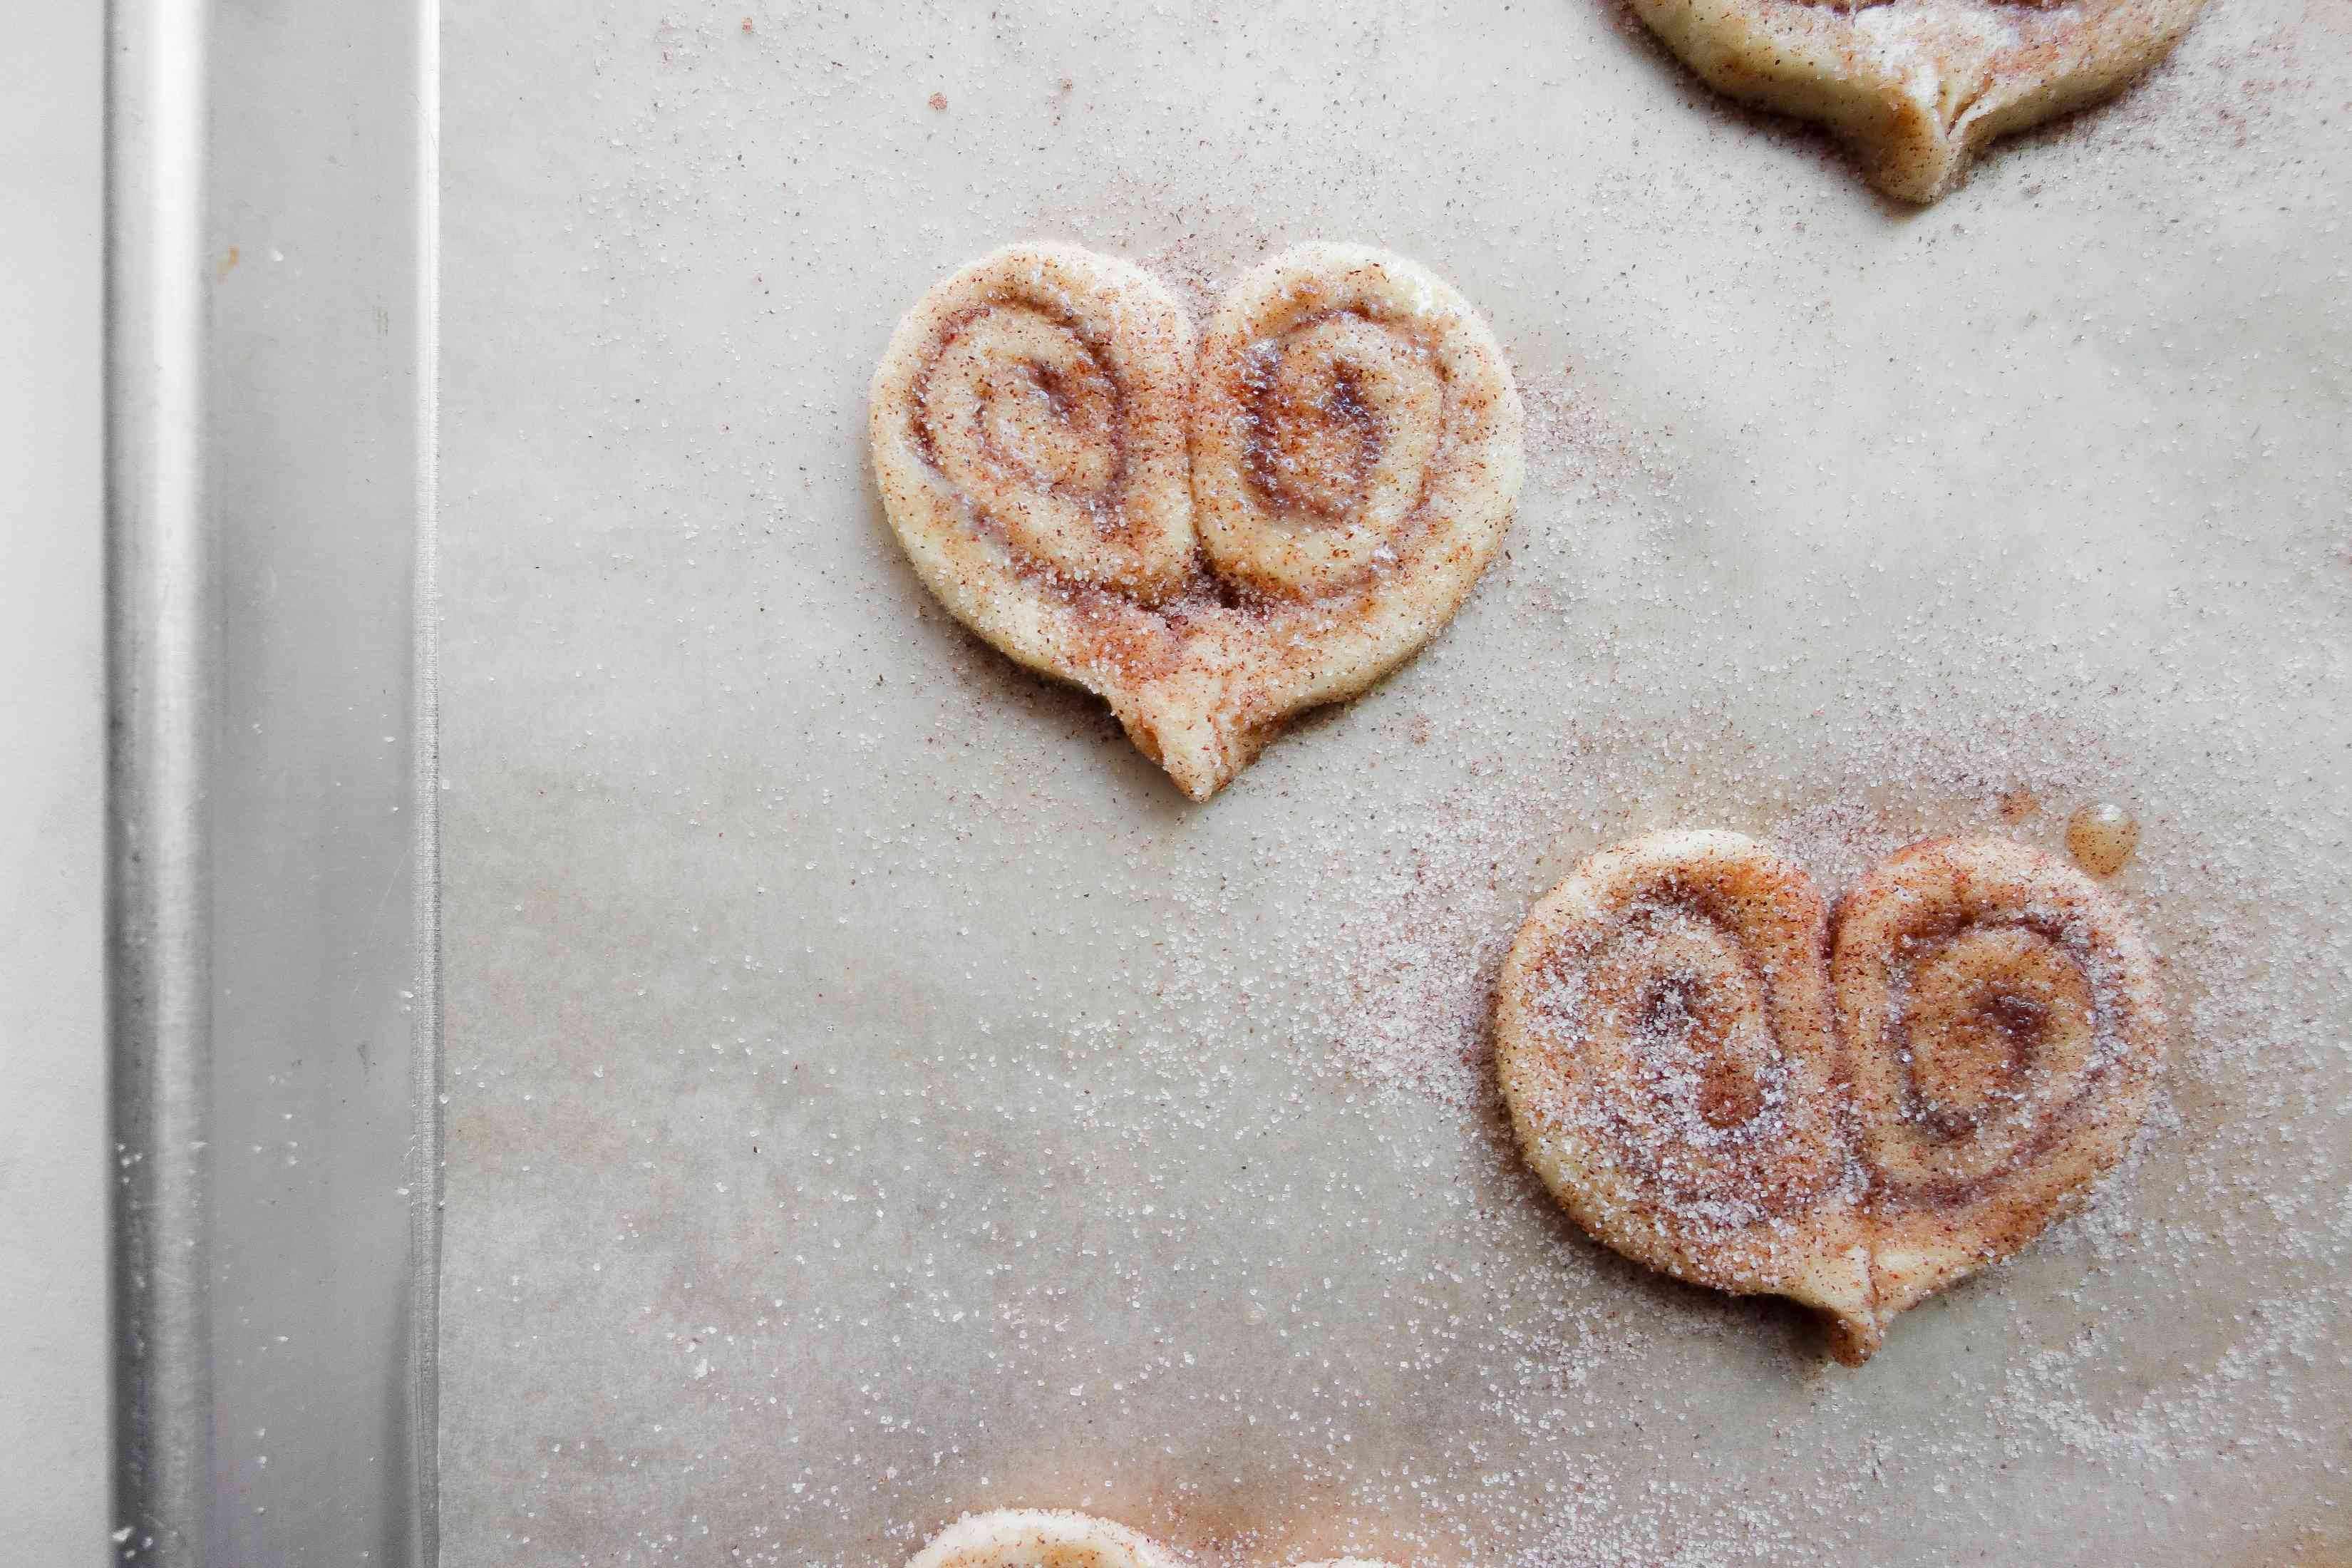 puff pastry hears on a baking sheet, covered with cinnamon sugar